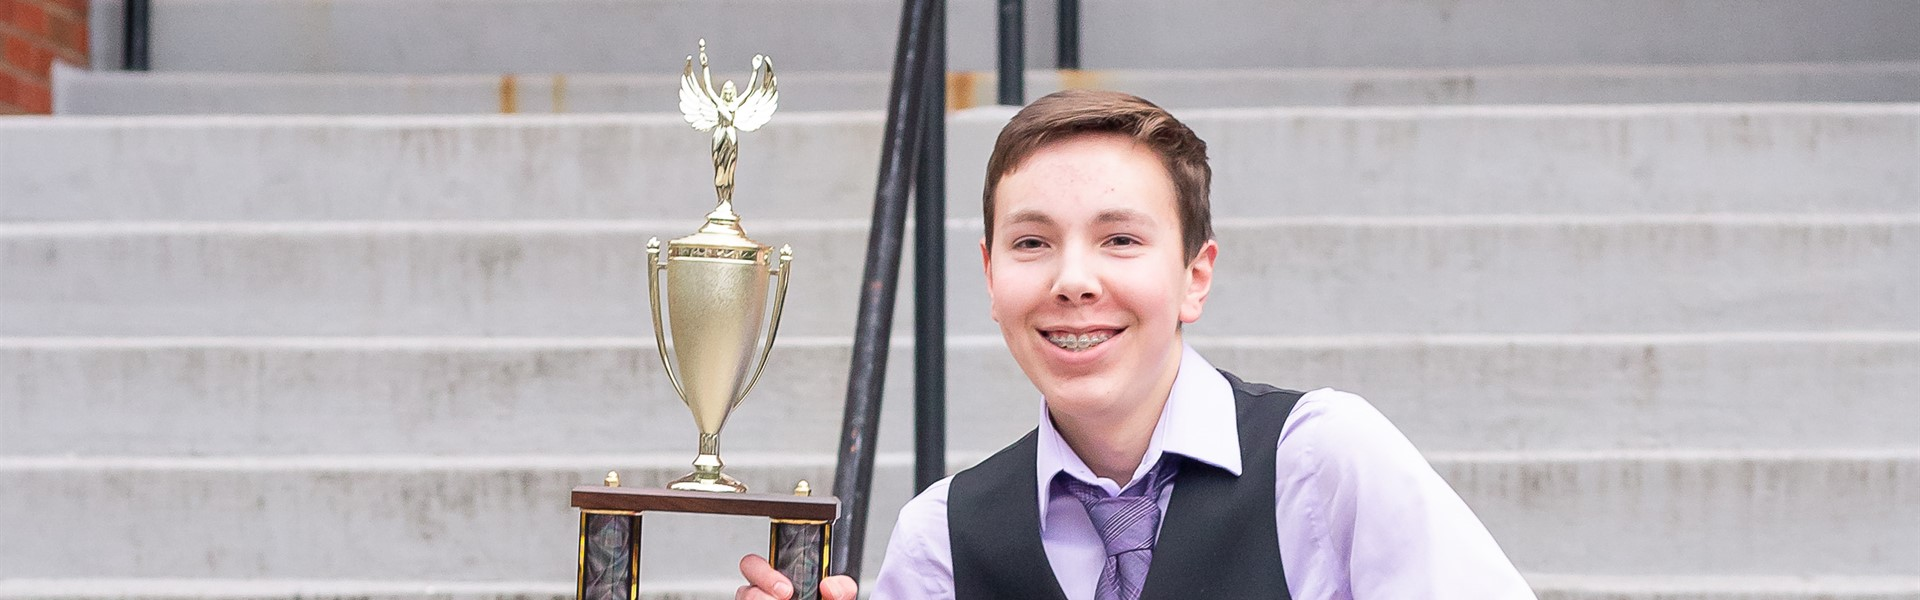 Brady Hall State Speech Champion in Prose